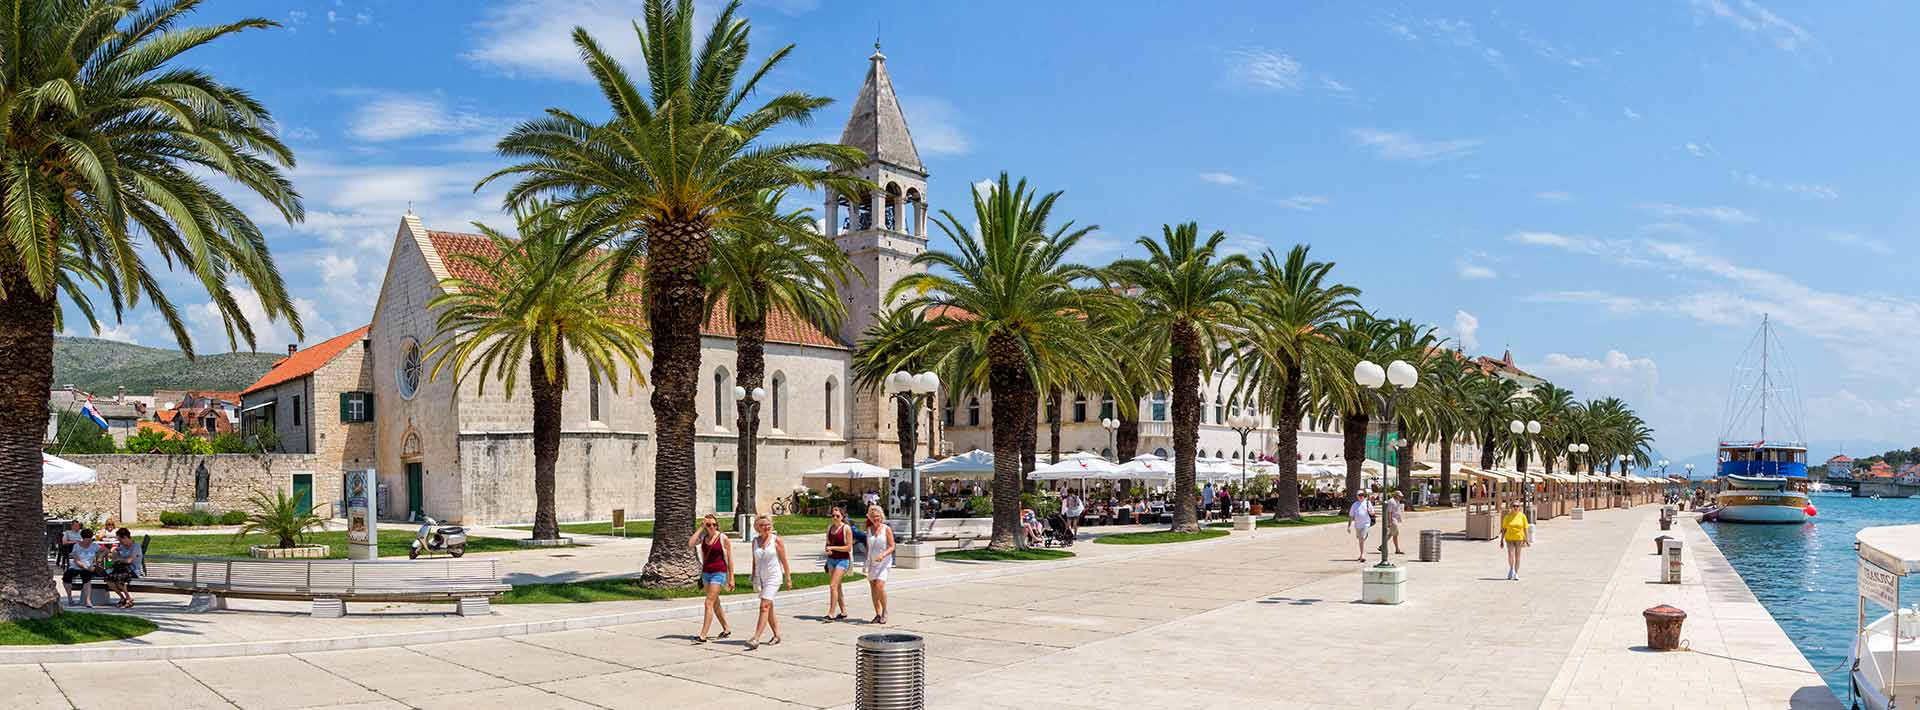 Trogir, UNESCO World Heritage Site, promenade